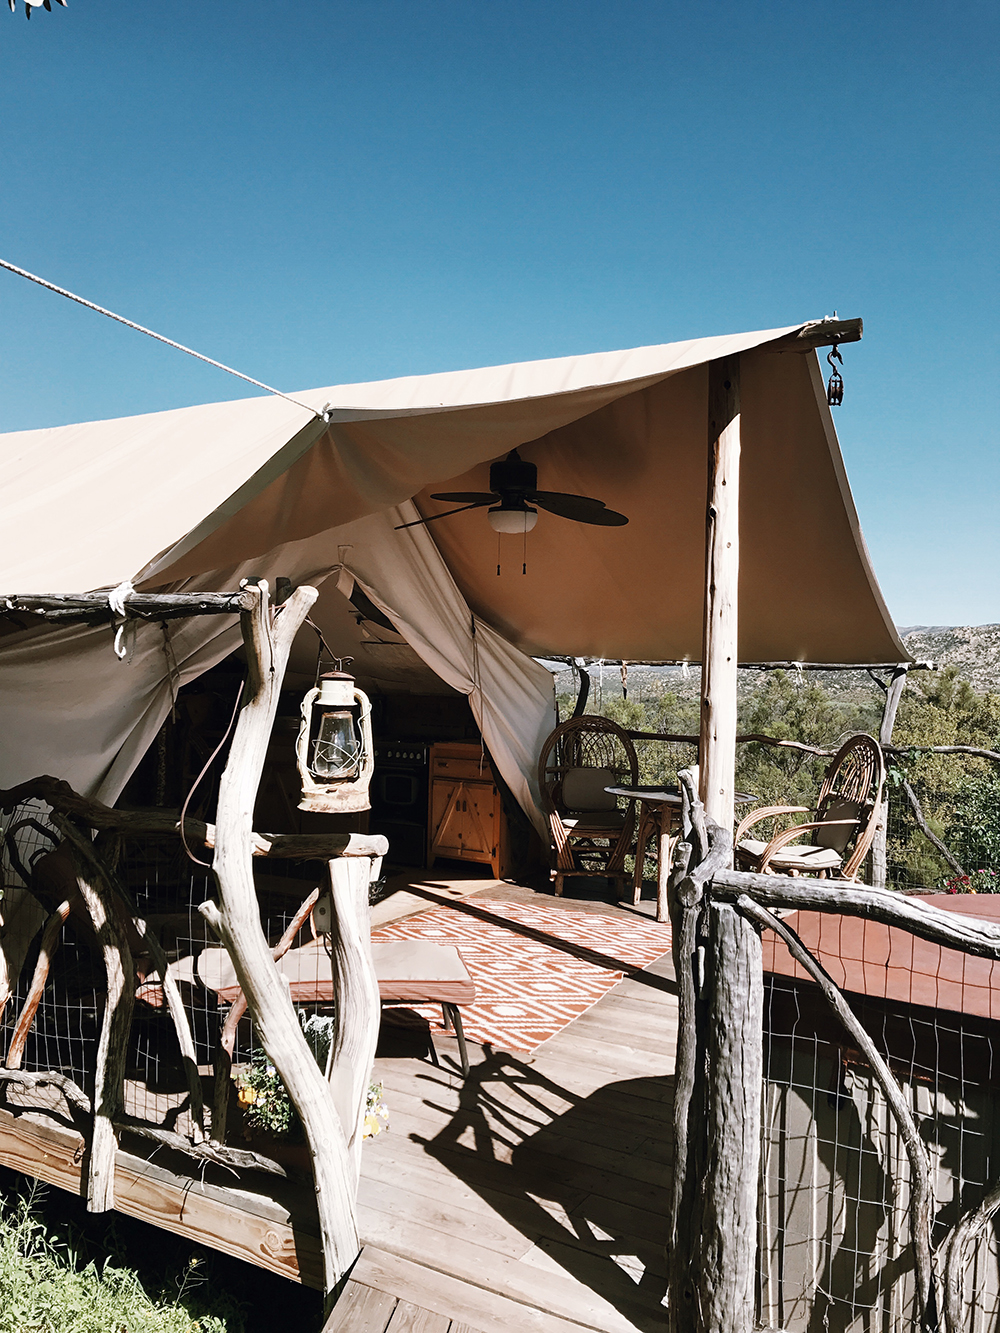 Glamping with Pets, Glamping Hub, Glamp, Glamping, Camp, Camping, Warner Springs, Temecula, Wine tasting, travel, melrodstyle, blogger, traveler, wine, san diego